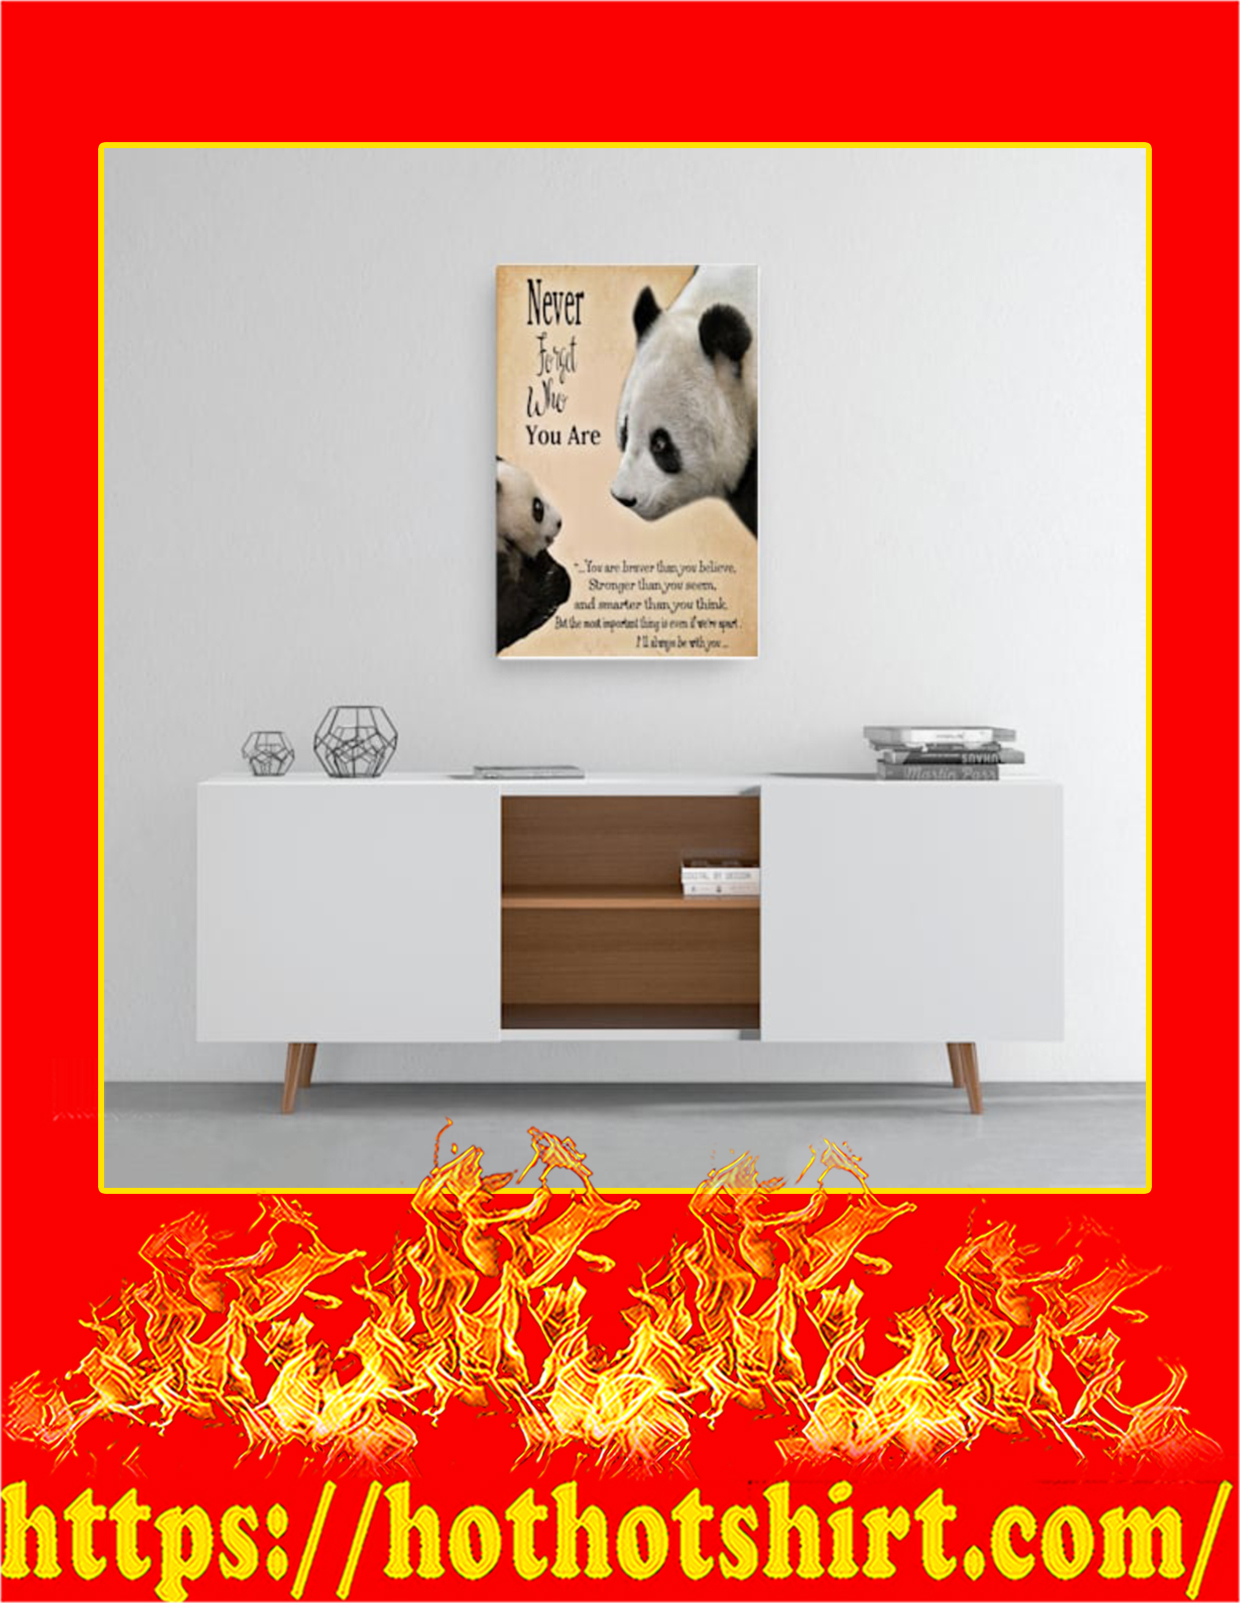 Panda never forget who you are canvas prints - Medium